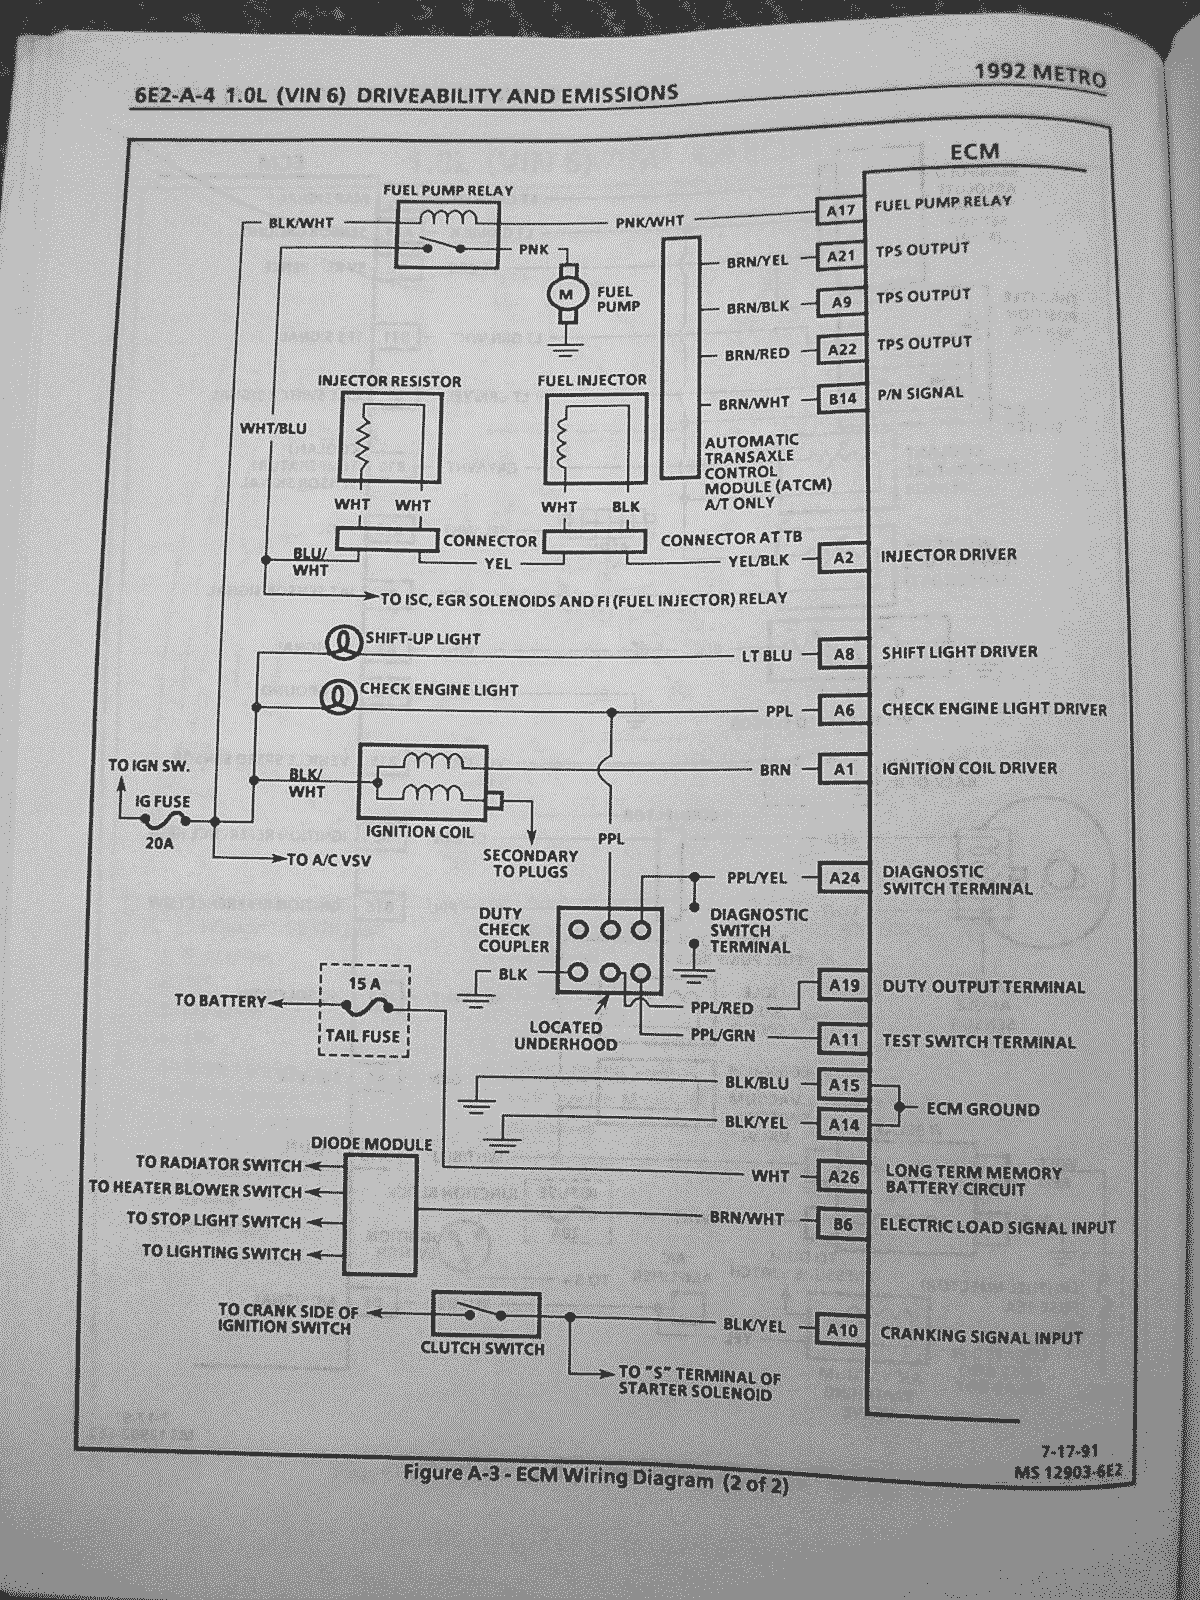 6e2 a 4 geo metro and suzuki swift wiring diagrams metroxfi com Wiring-Diagram 1995 Geo Metro at bayanpartner.co